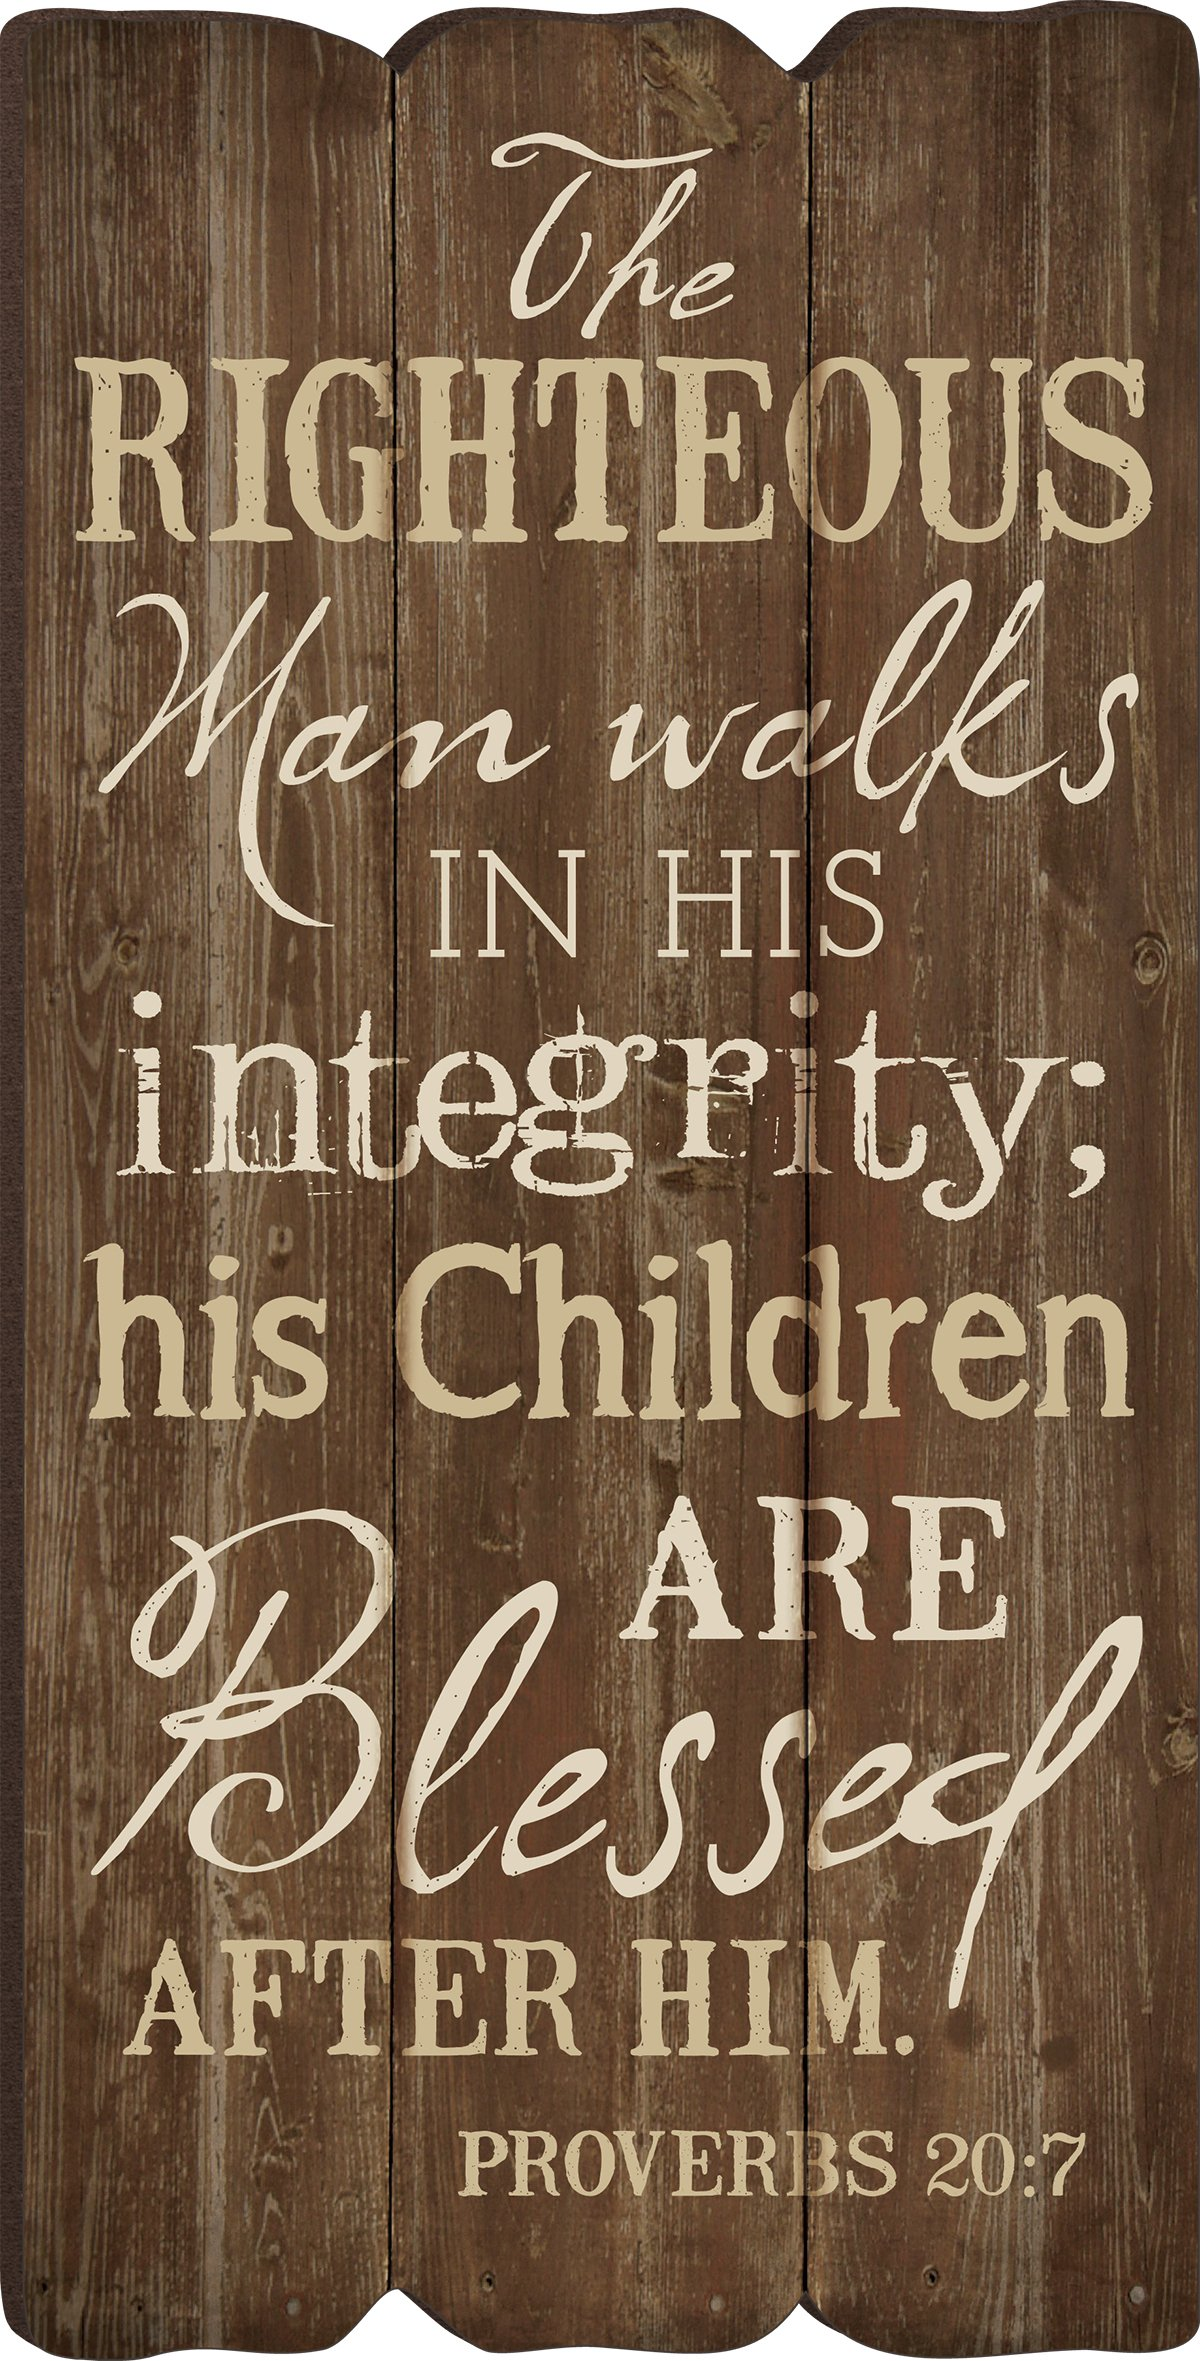 The Righteous Man Proverbs 20:7 Small 12x6 Fence Post Wood Look Wall Art Plaque by P Graham Dunn